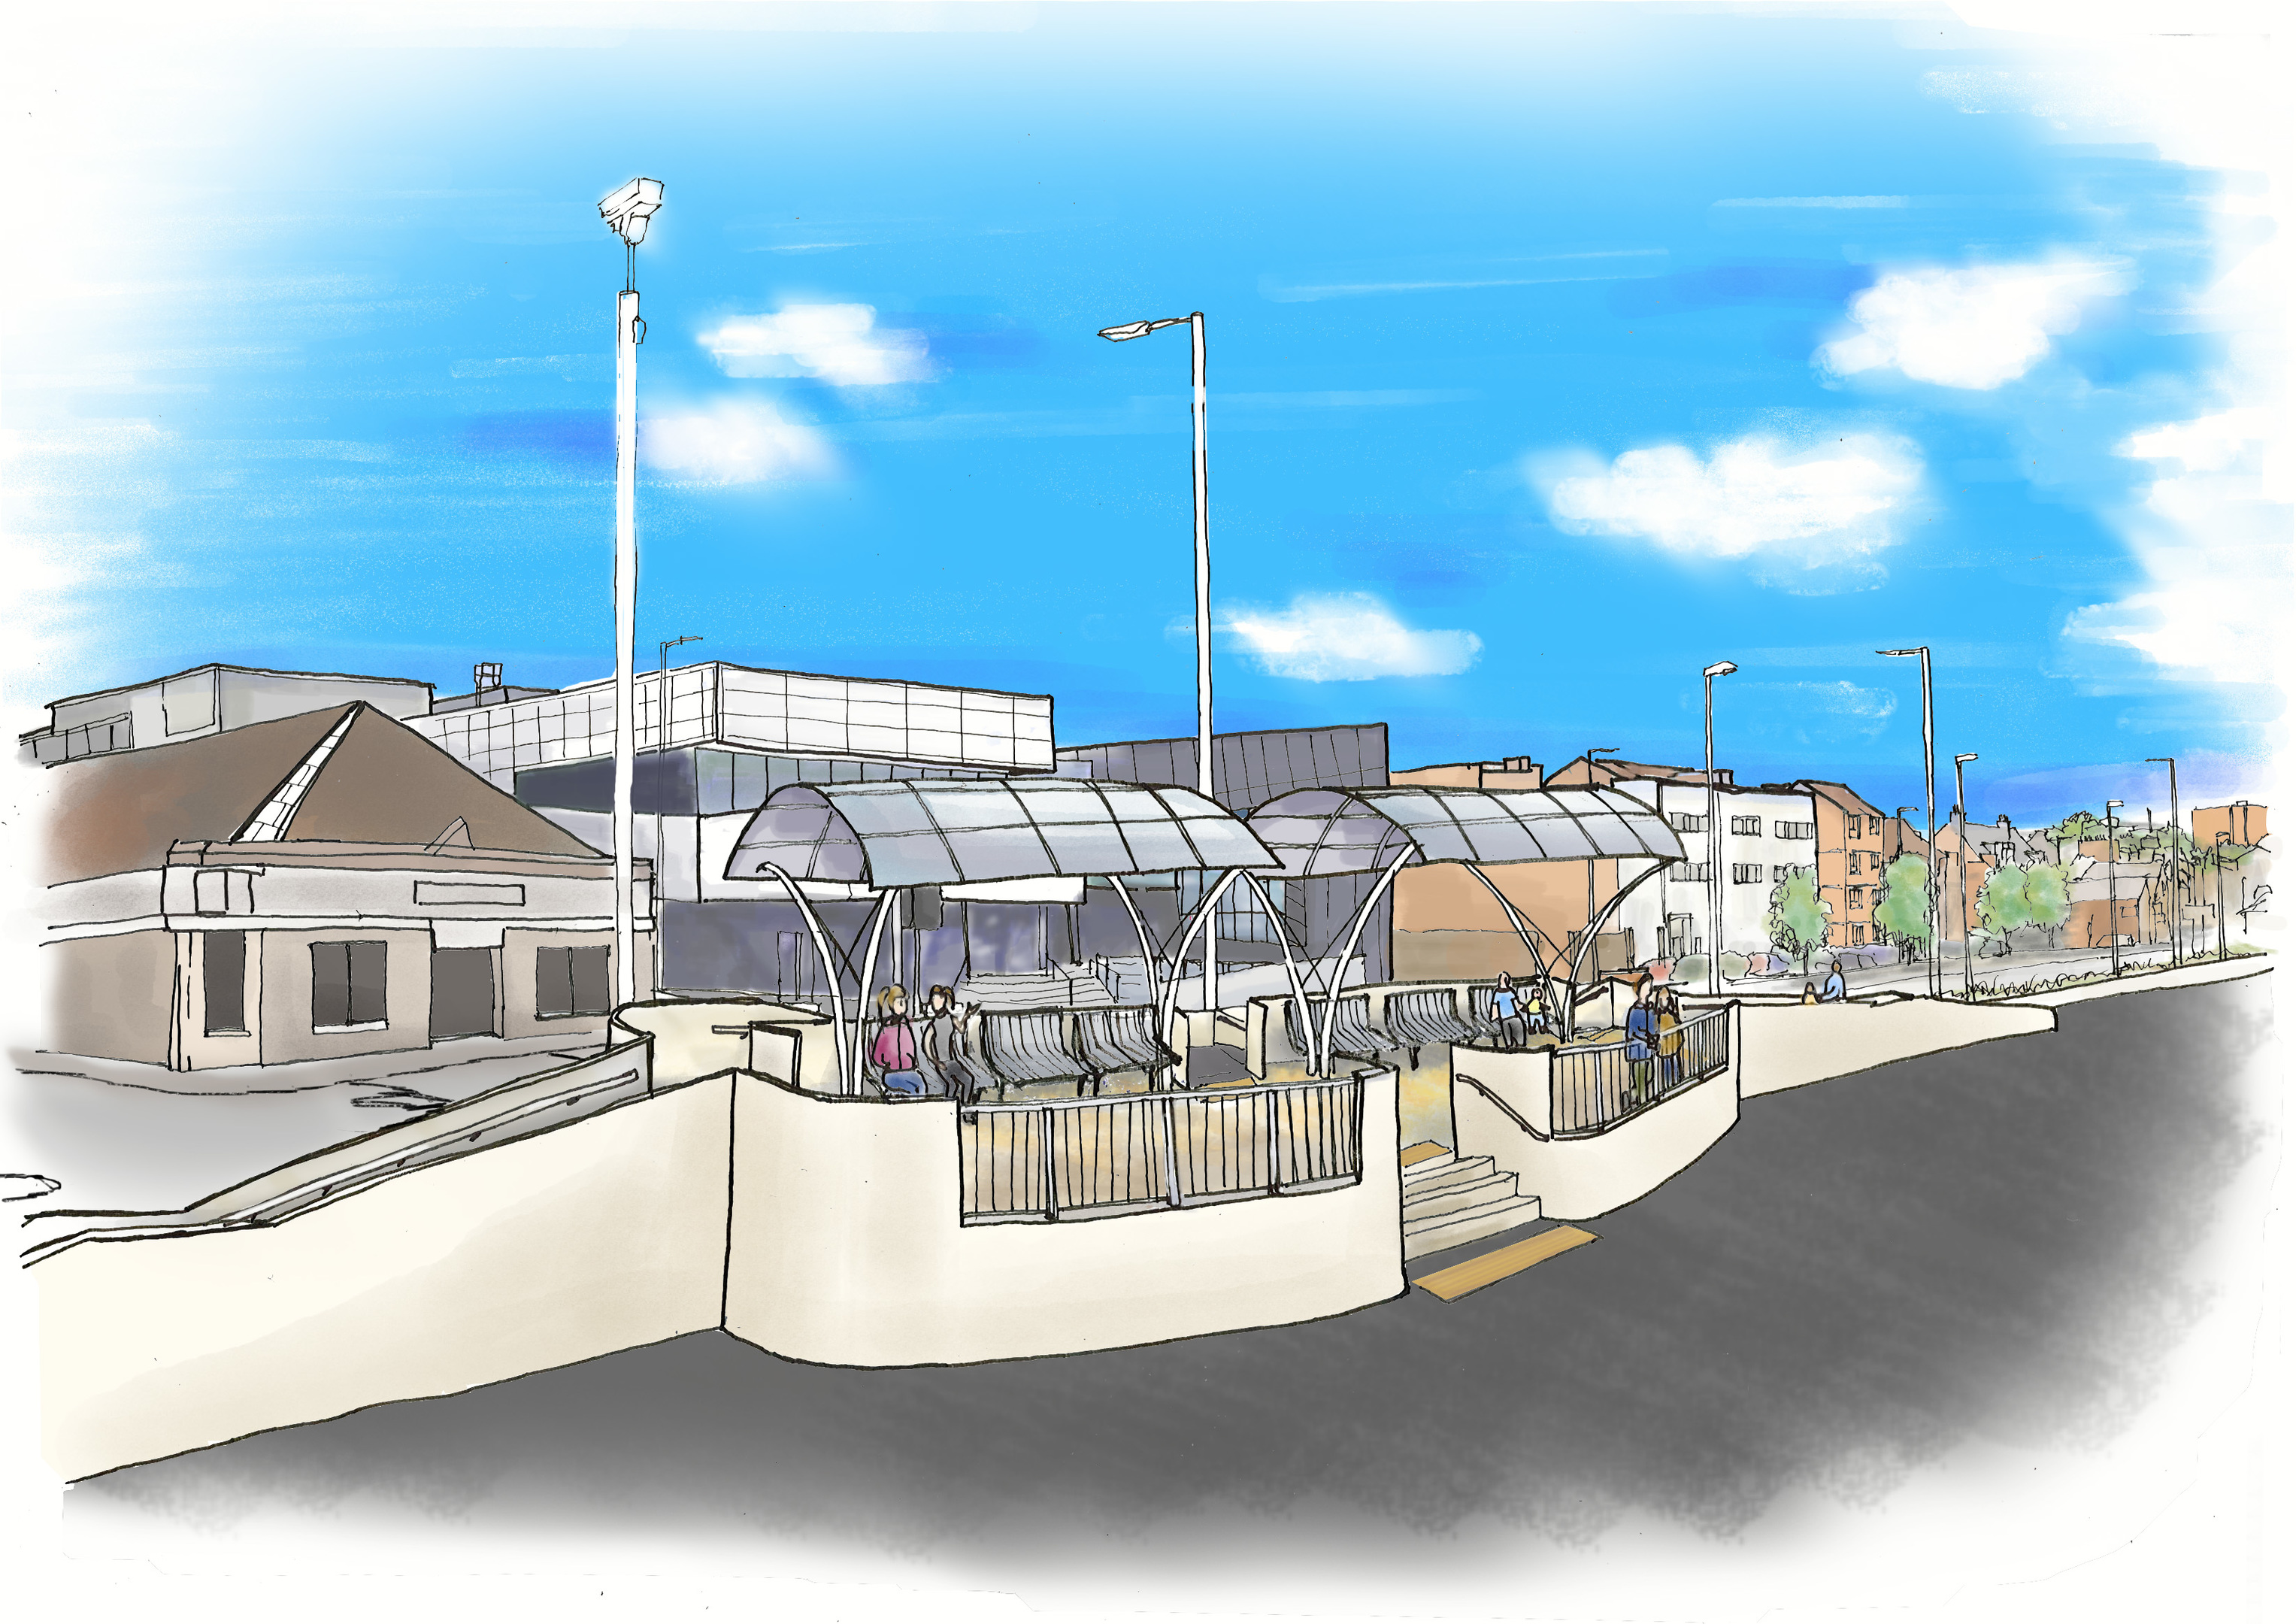 An artist impression of impovements to Kirkcaldy Esplanade.